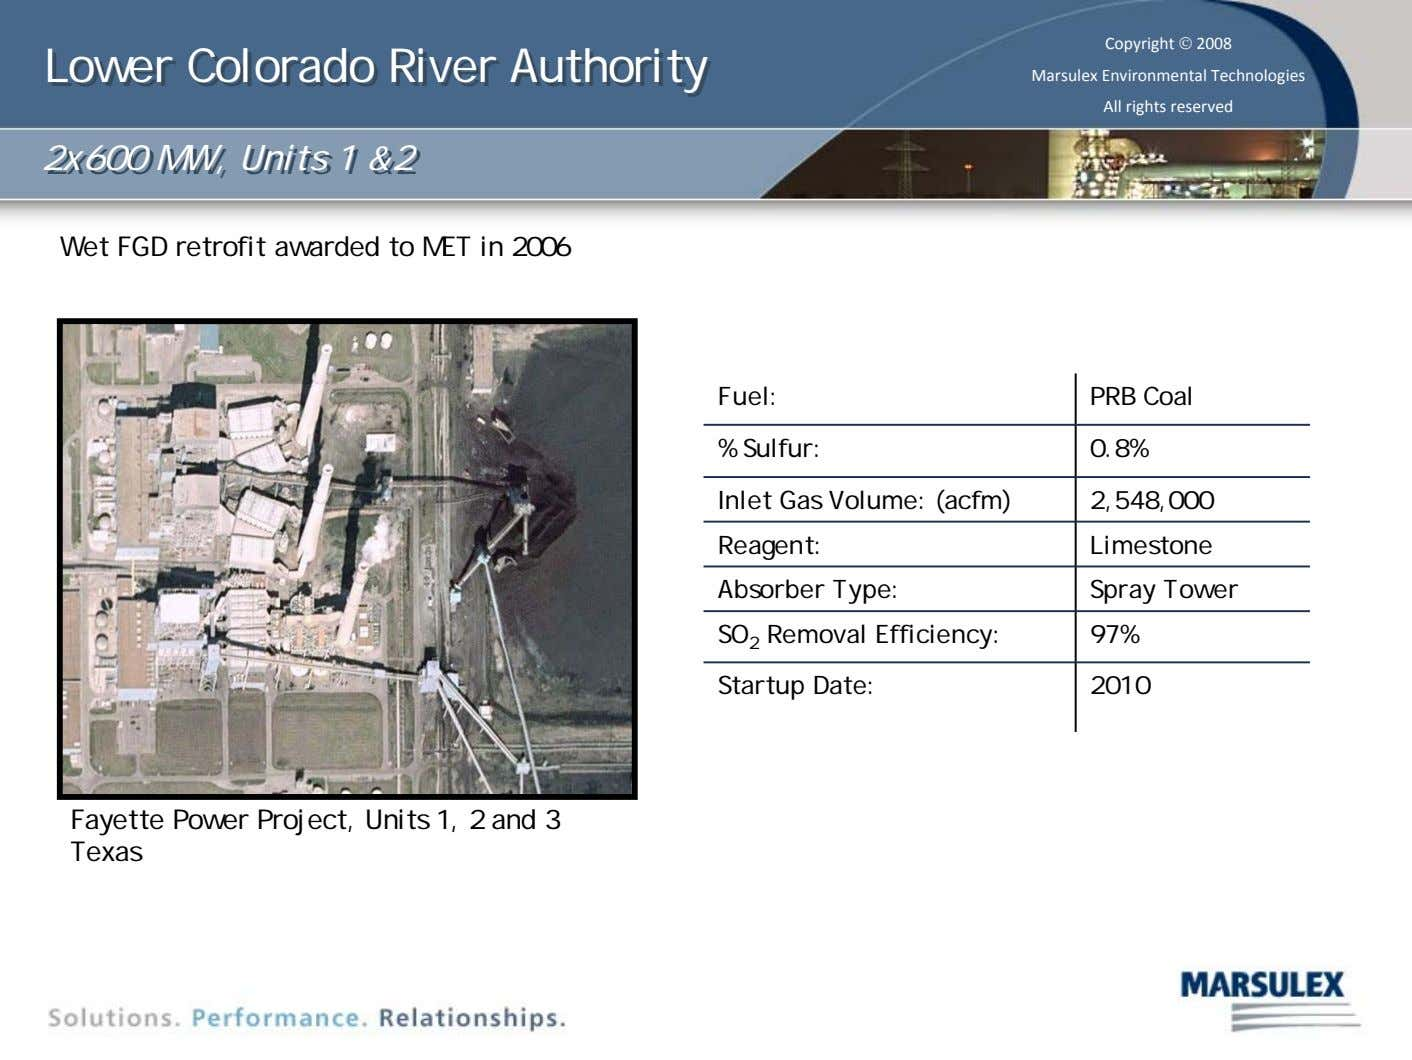 Lower Lower Colorado Colorado River River Authority Authority Copyright © 2008 Marsulex Environmental Technologies All rights